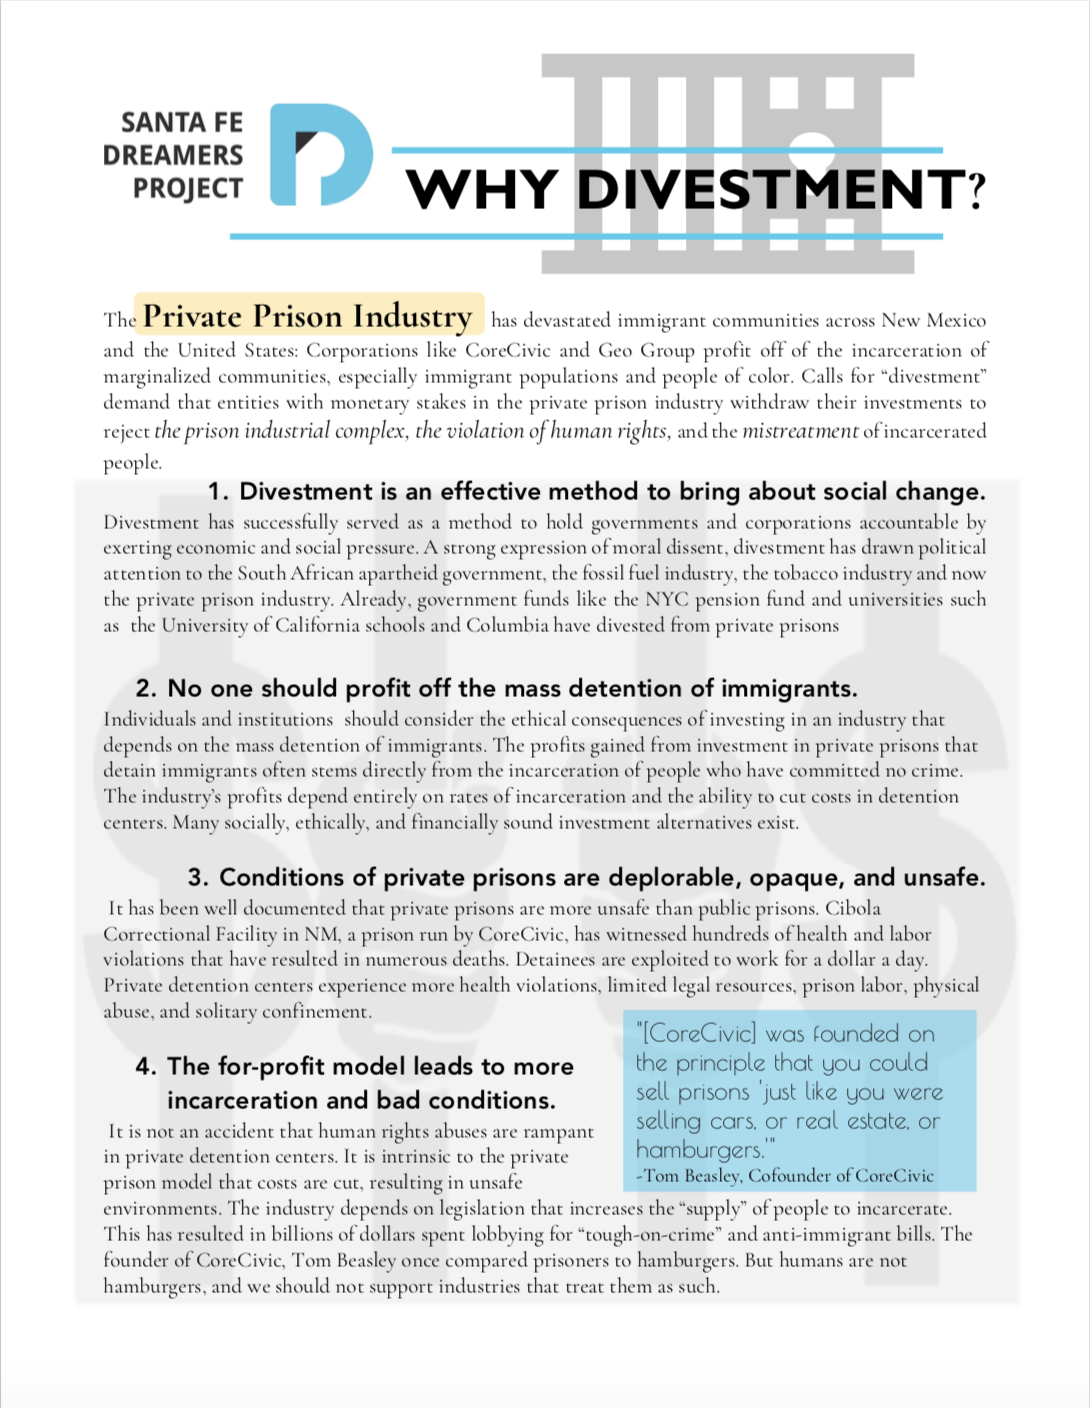 Why Divestment?